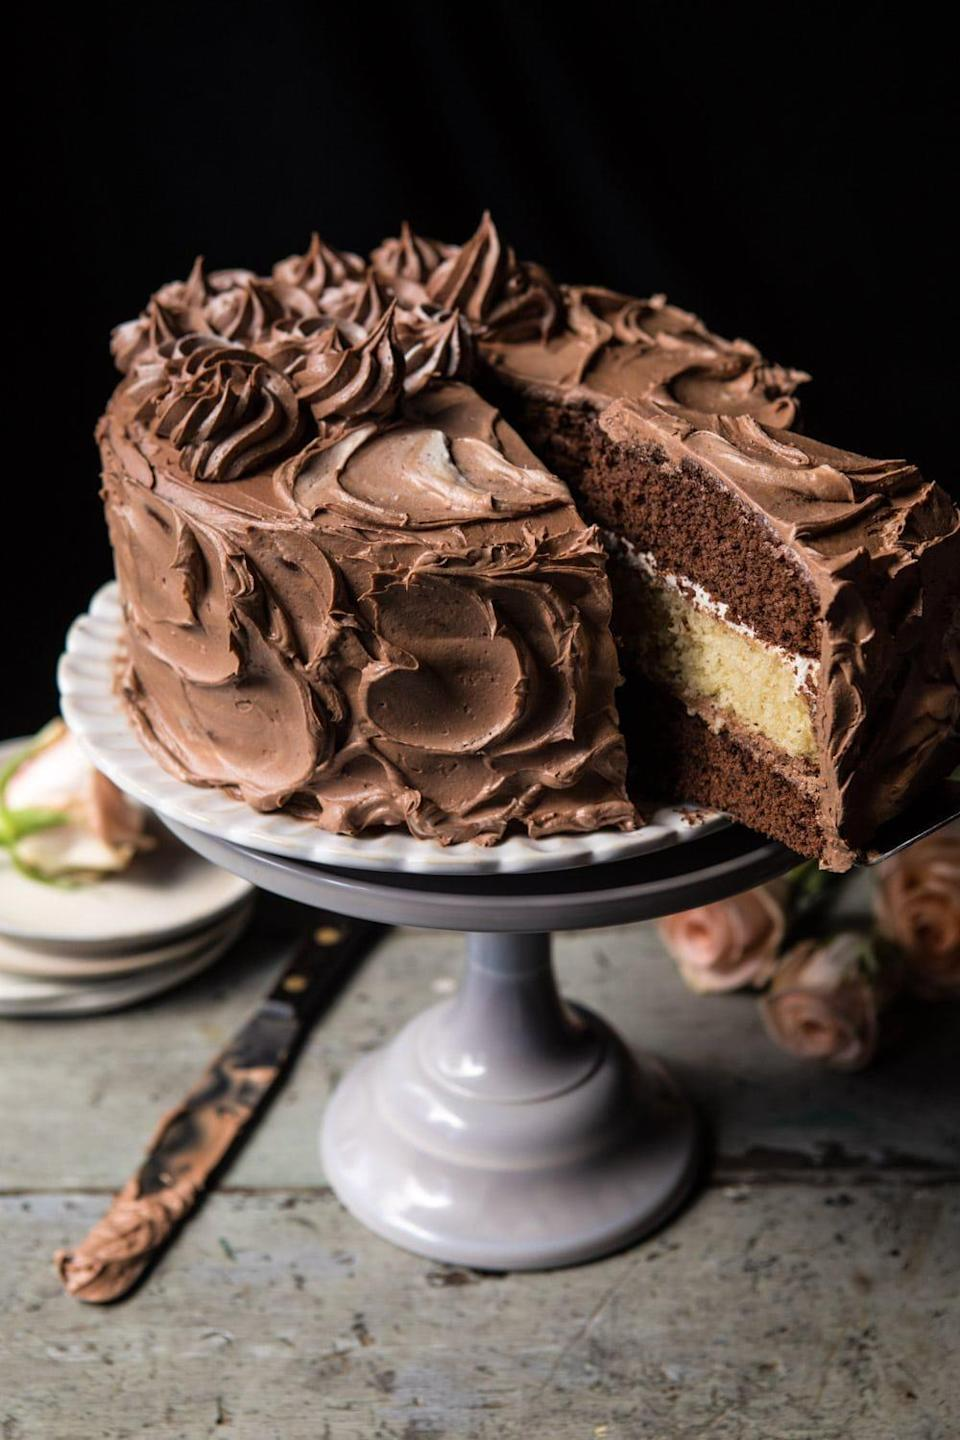 "<p>Get the best of both worlds when you make this delicious cake. You'll get forkfuls of vanilla cake that's sandwiched between two layers of chocolate cake and topped with both chocolate and vanilla buttercream. Need we say more?</p> <p><strong>Get the recipe</strong>: <a href=""https://www.halfbakedharvest.com/chocolate-vanilla-birthday-cake/"" class=""link rapid-noclick-resp"" rel=""nofollow noopener"" target=""_blank"" data-ylk=""slk:better together chocolate vanilla cake"">better together chocolate vanilla cake</a></p>"